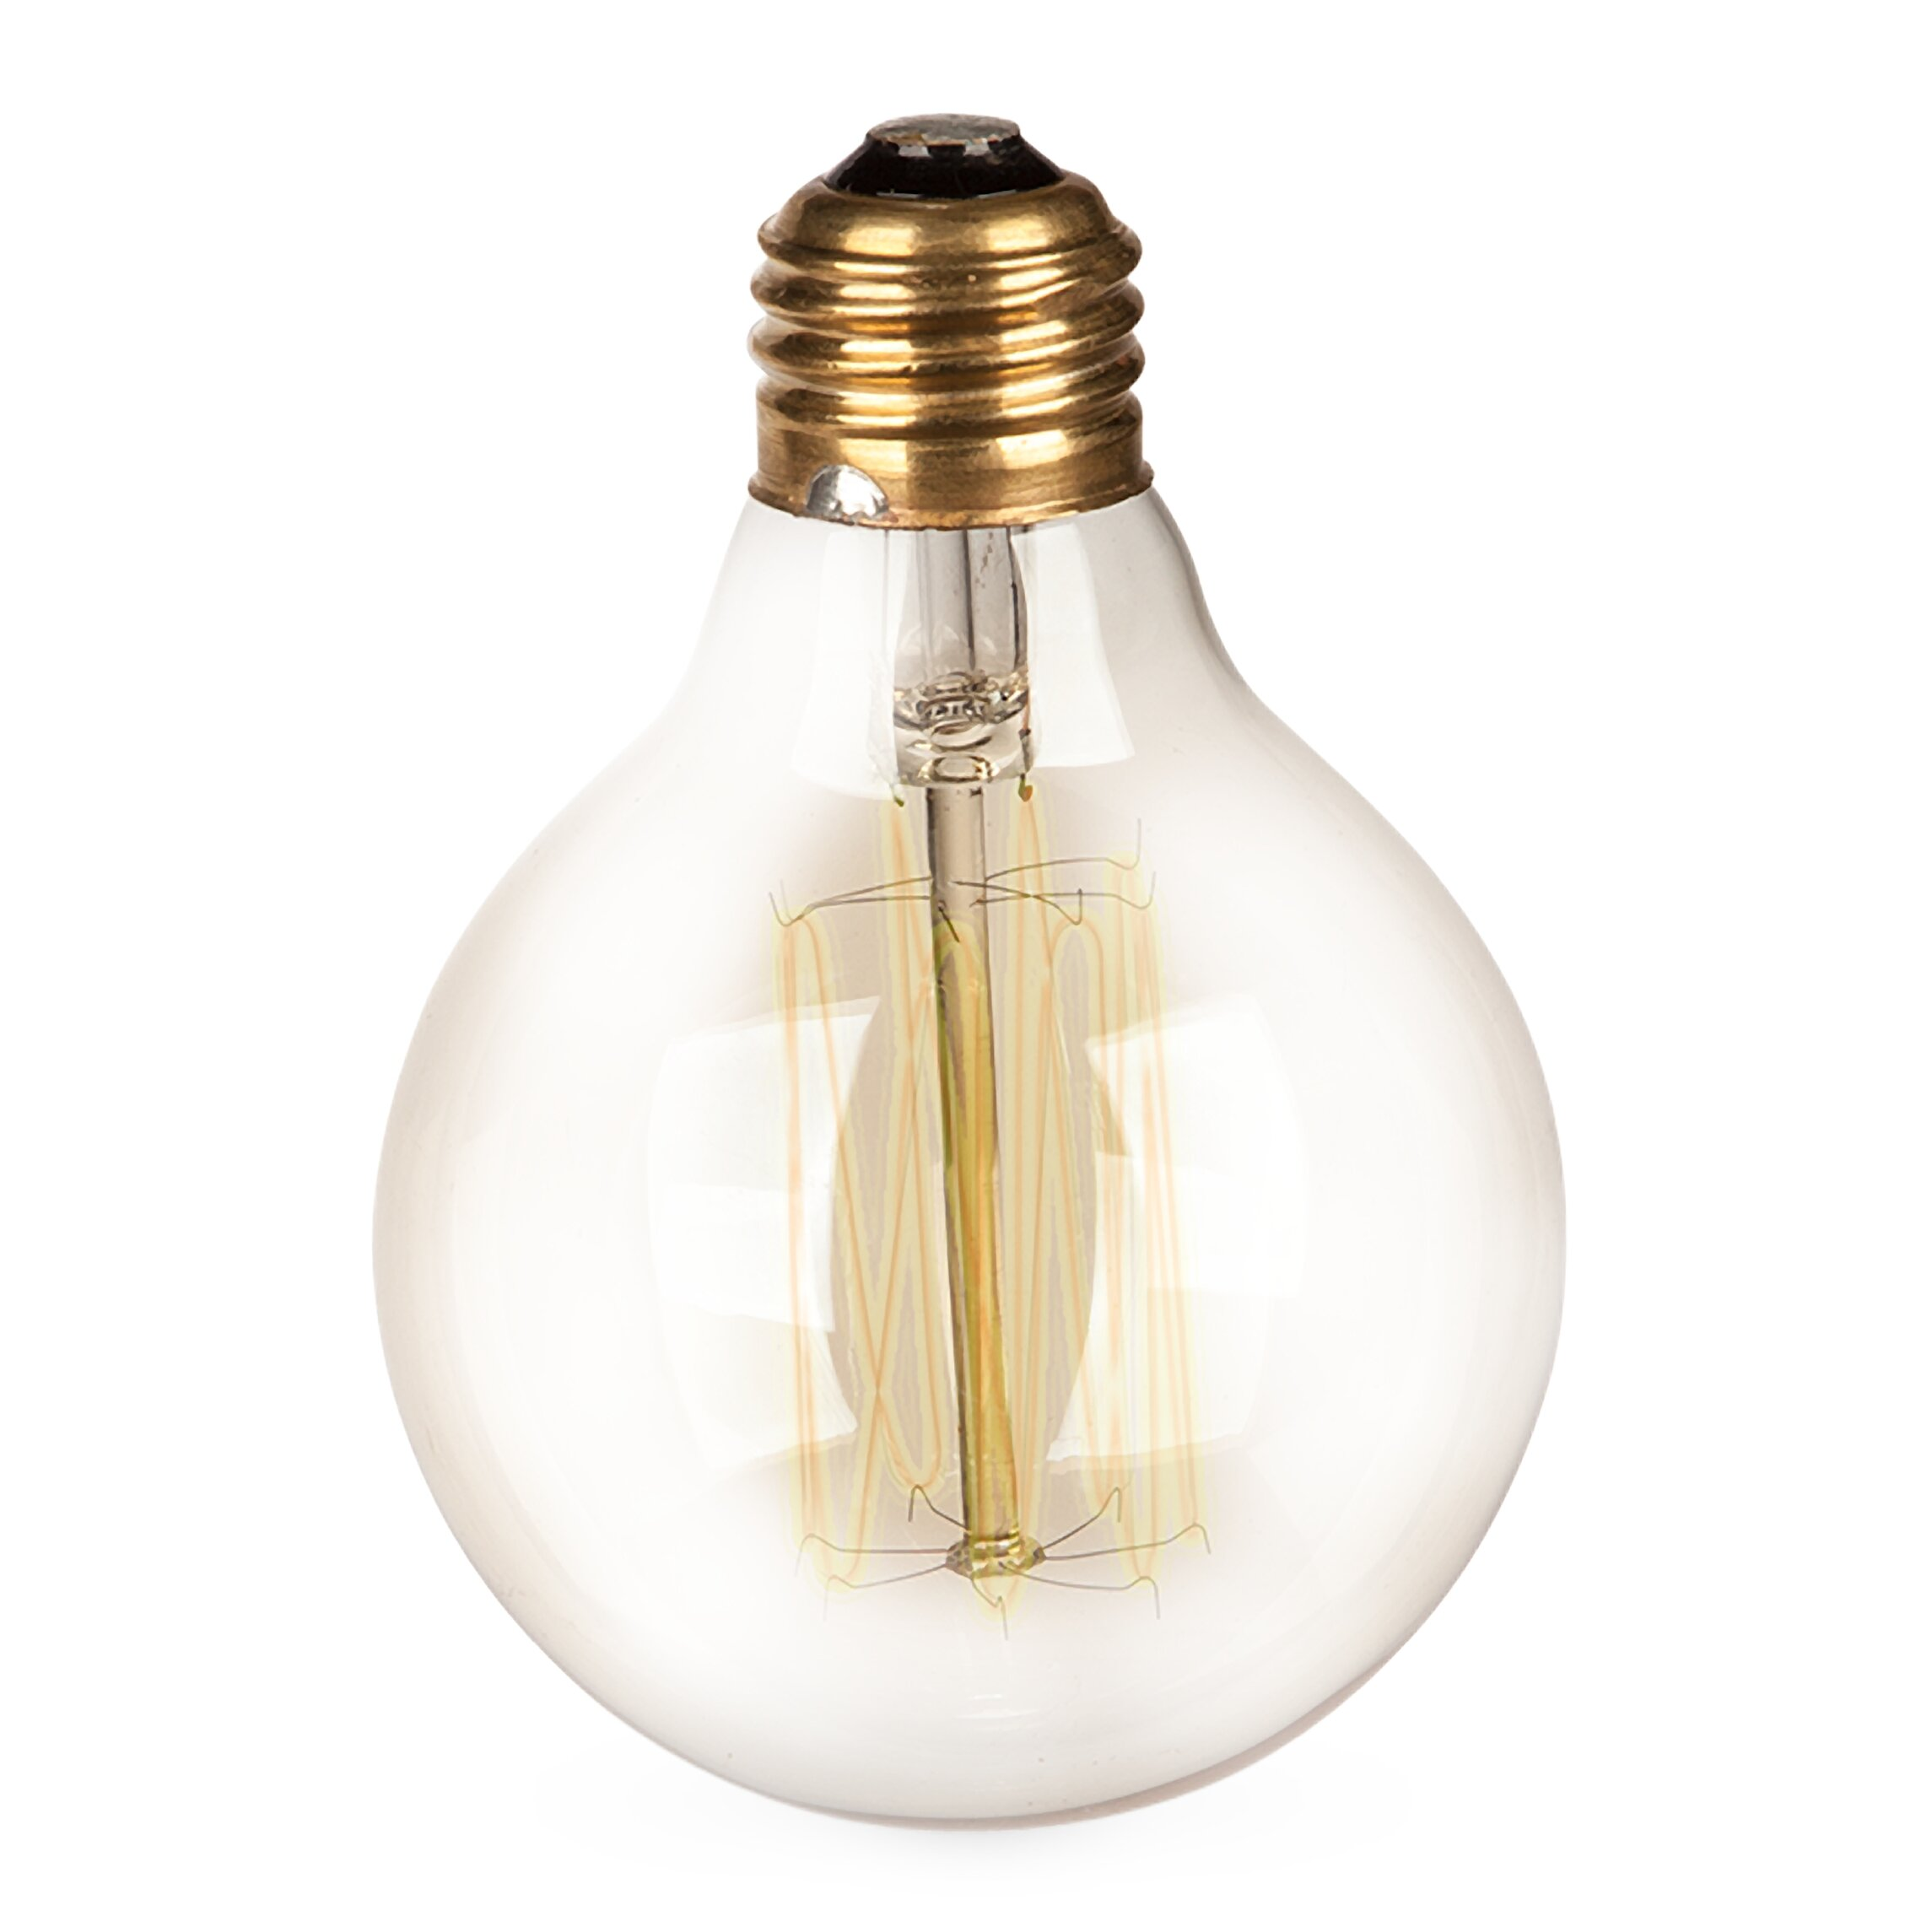 the gerson companies 20 watt incandescent light bulb wayfair. Black Bedroom Furniture Sets. Home Design Ideas